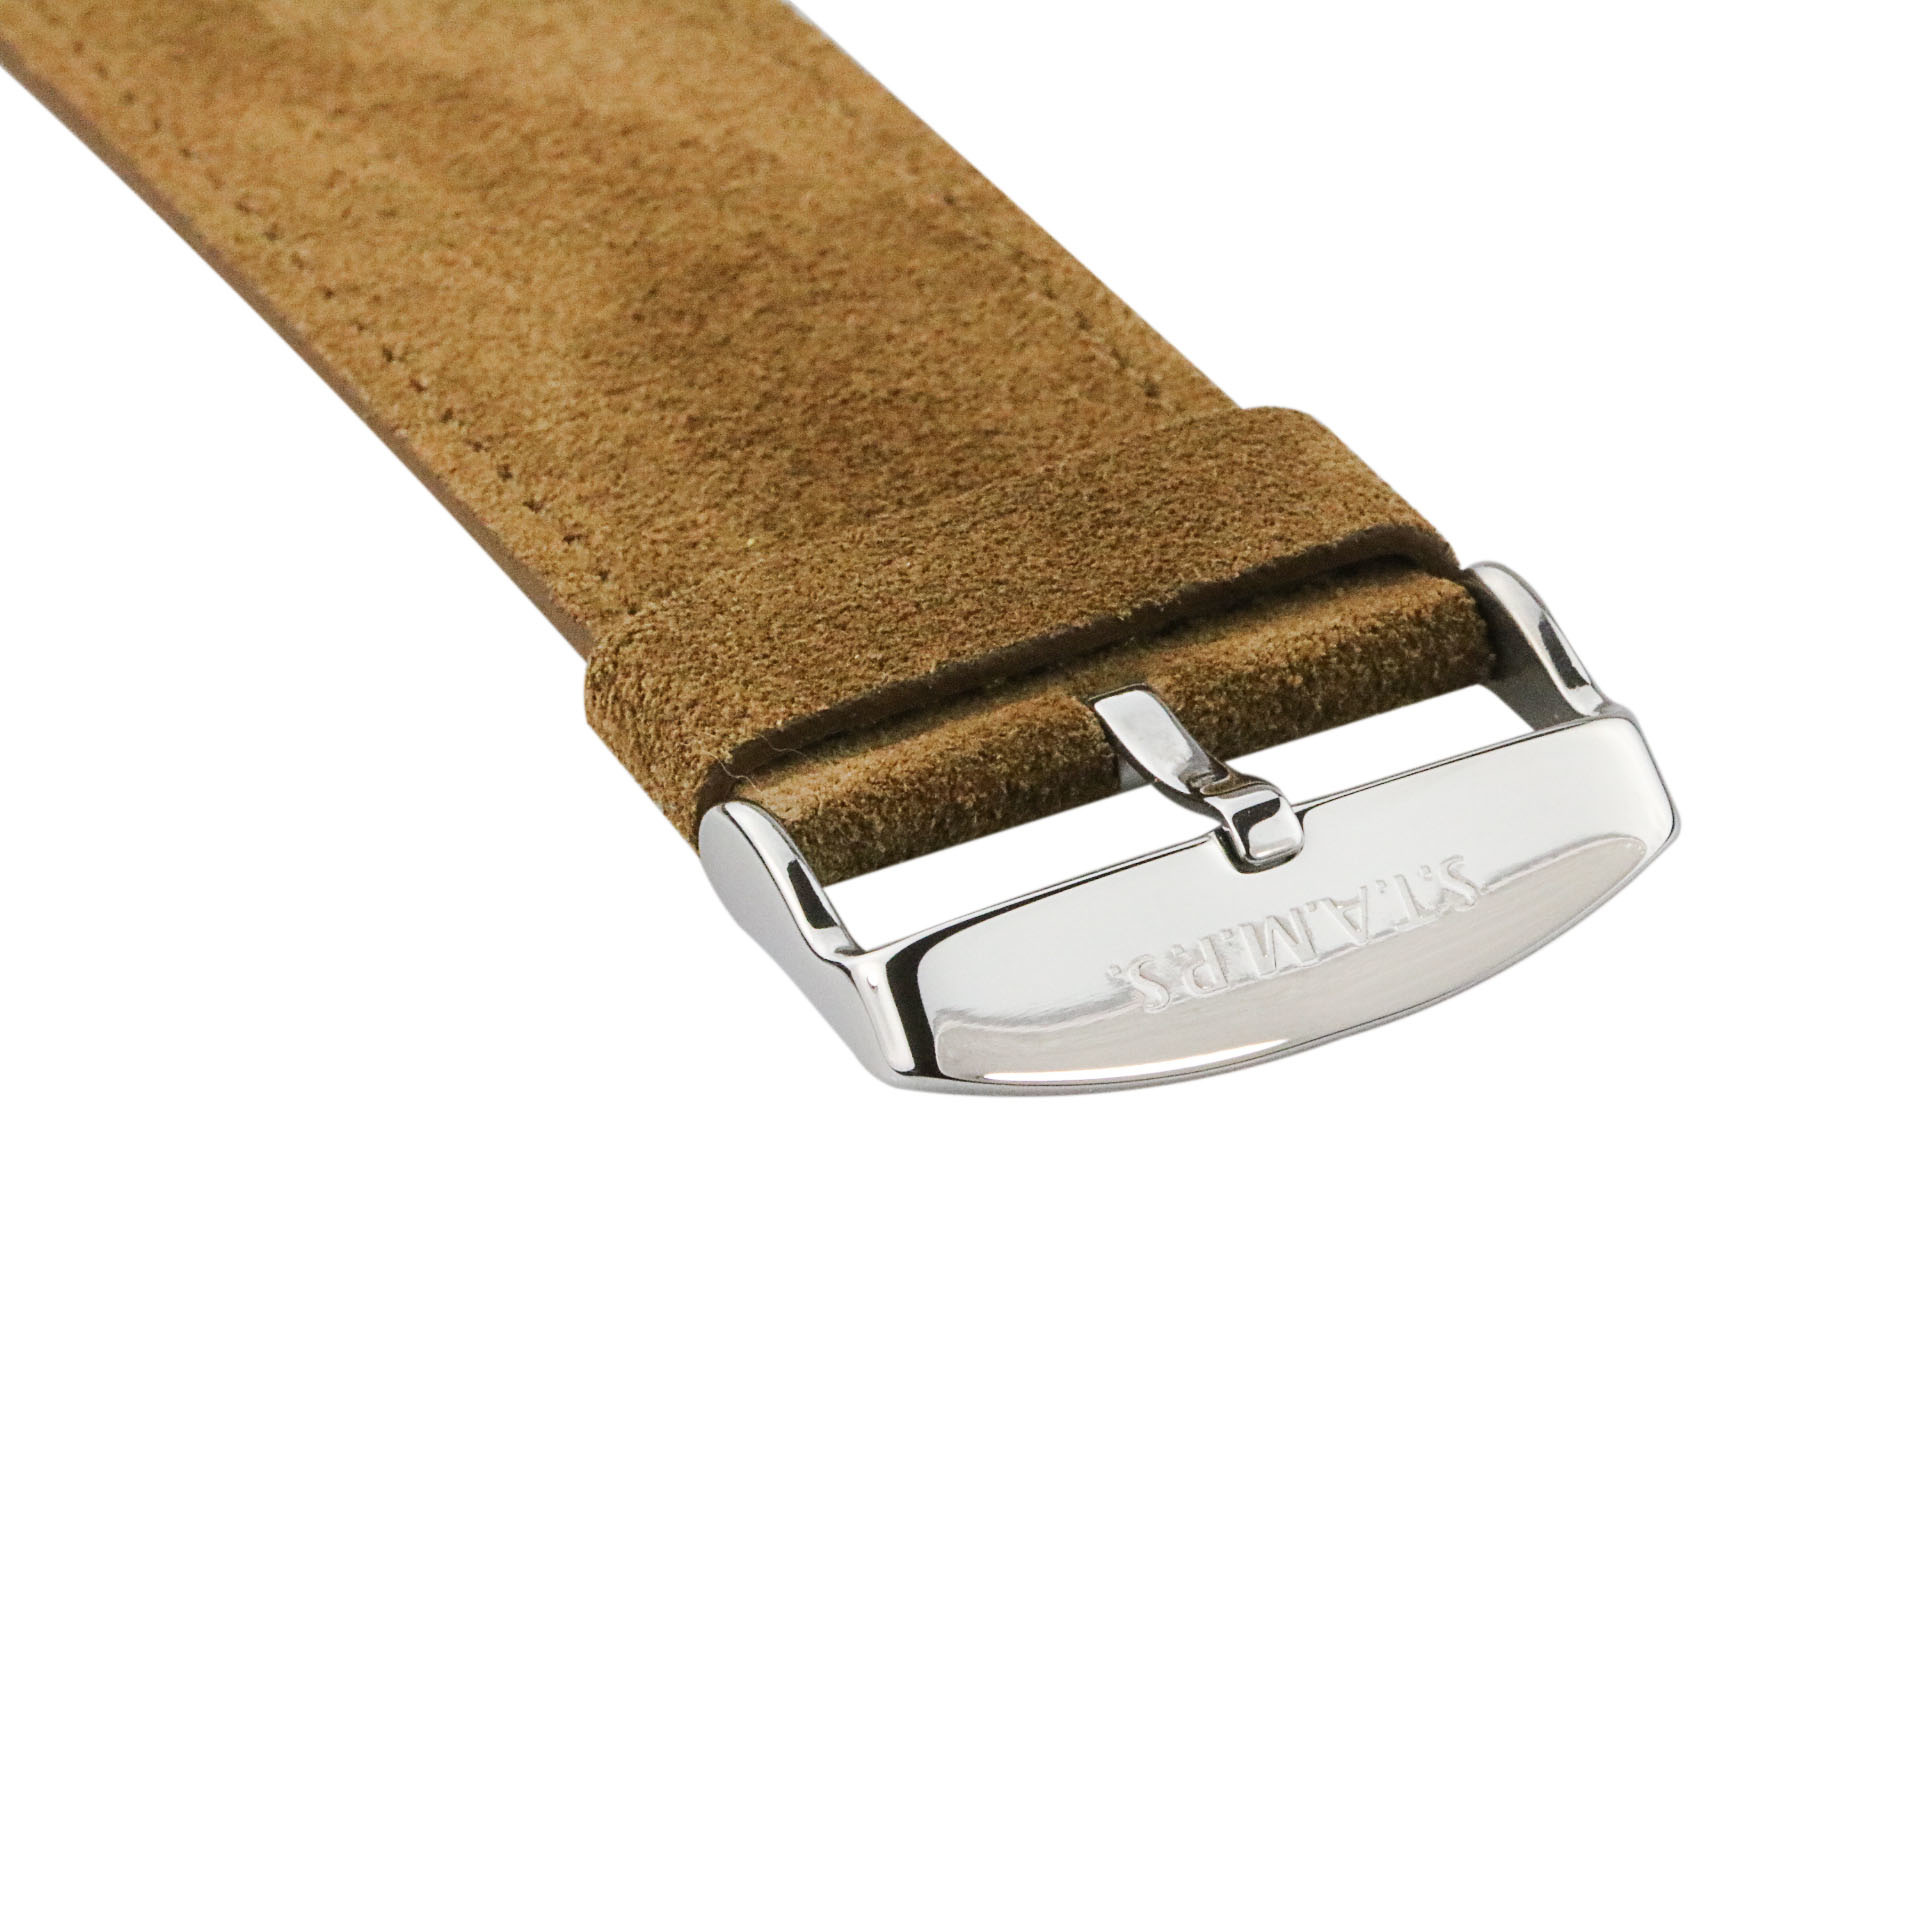 S.T.A.M.P.S Watchband Wild Leather brown